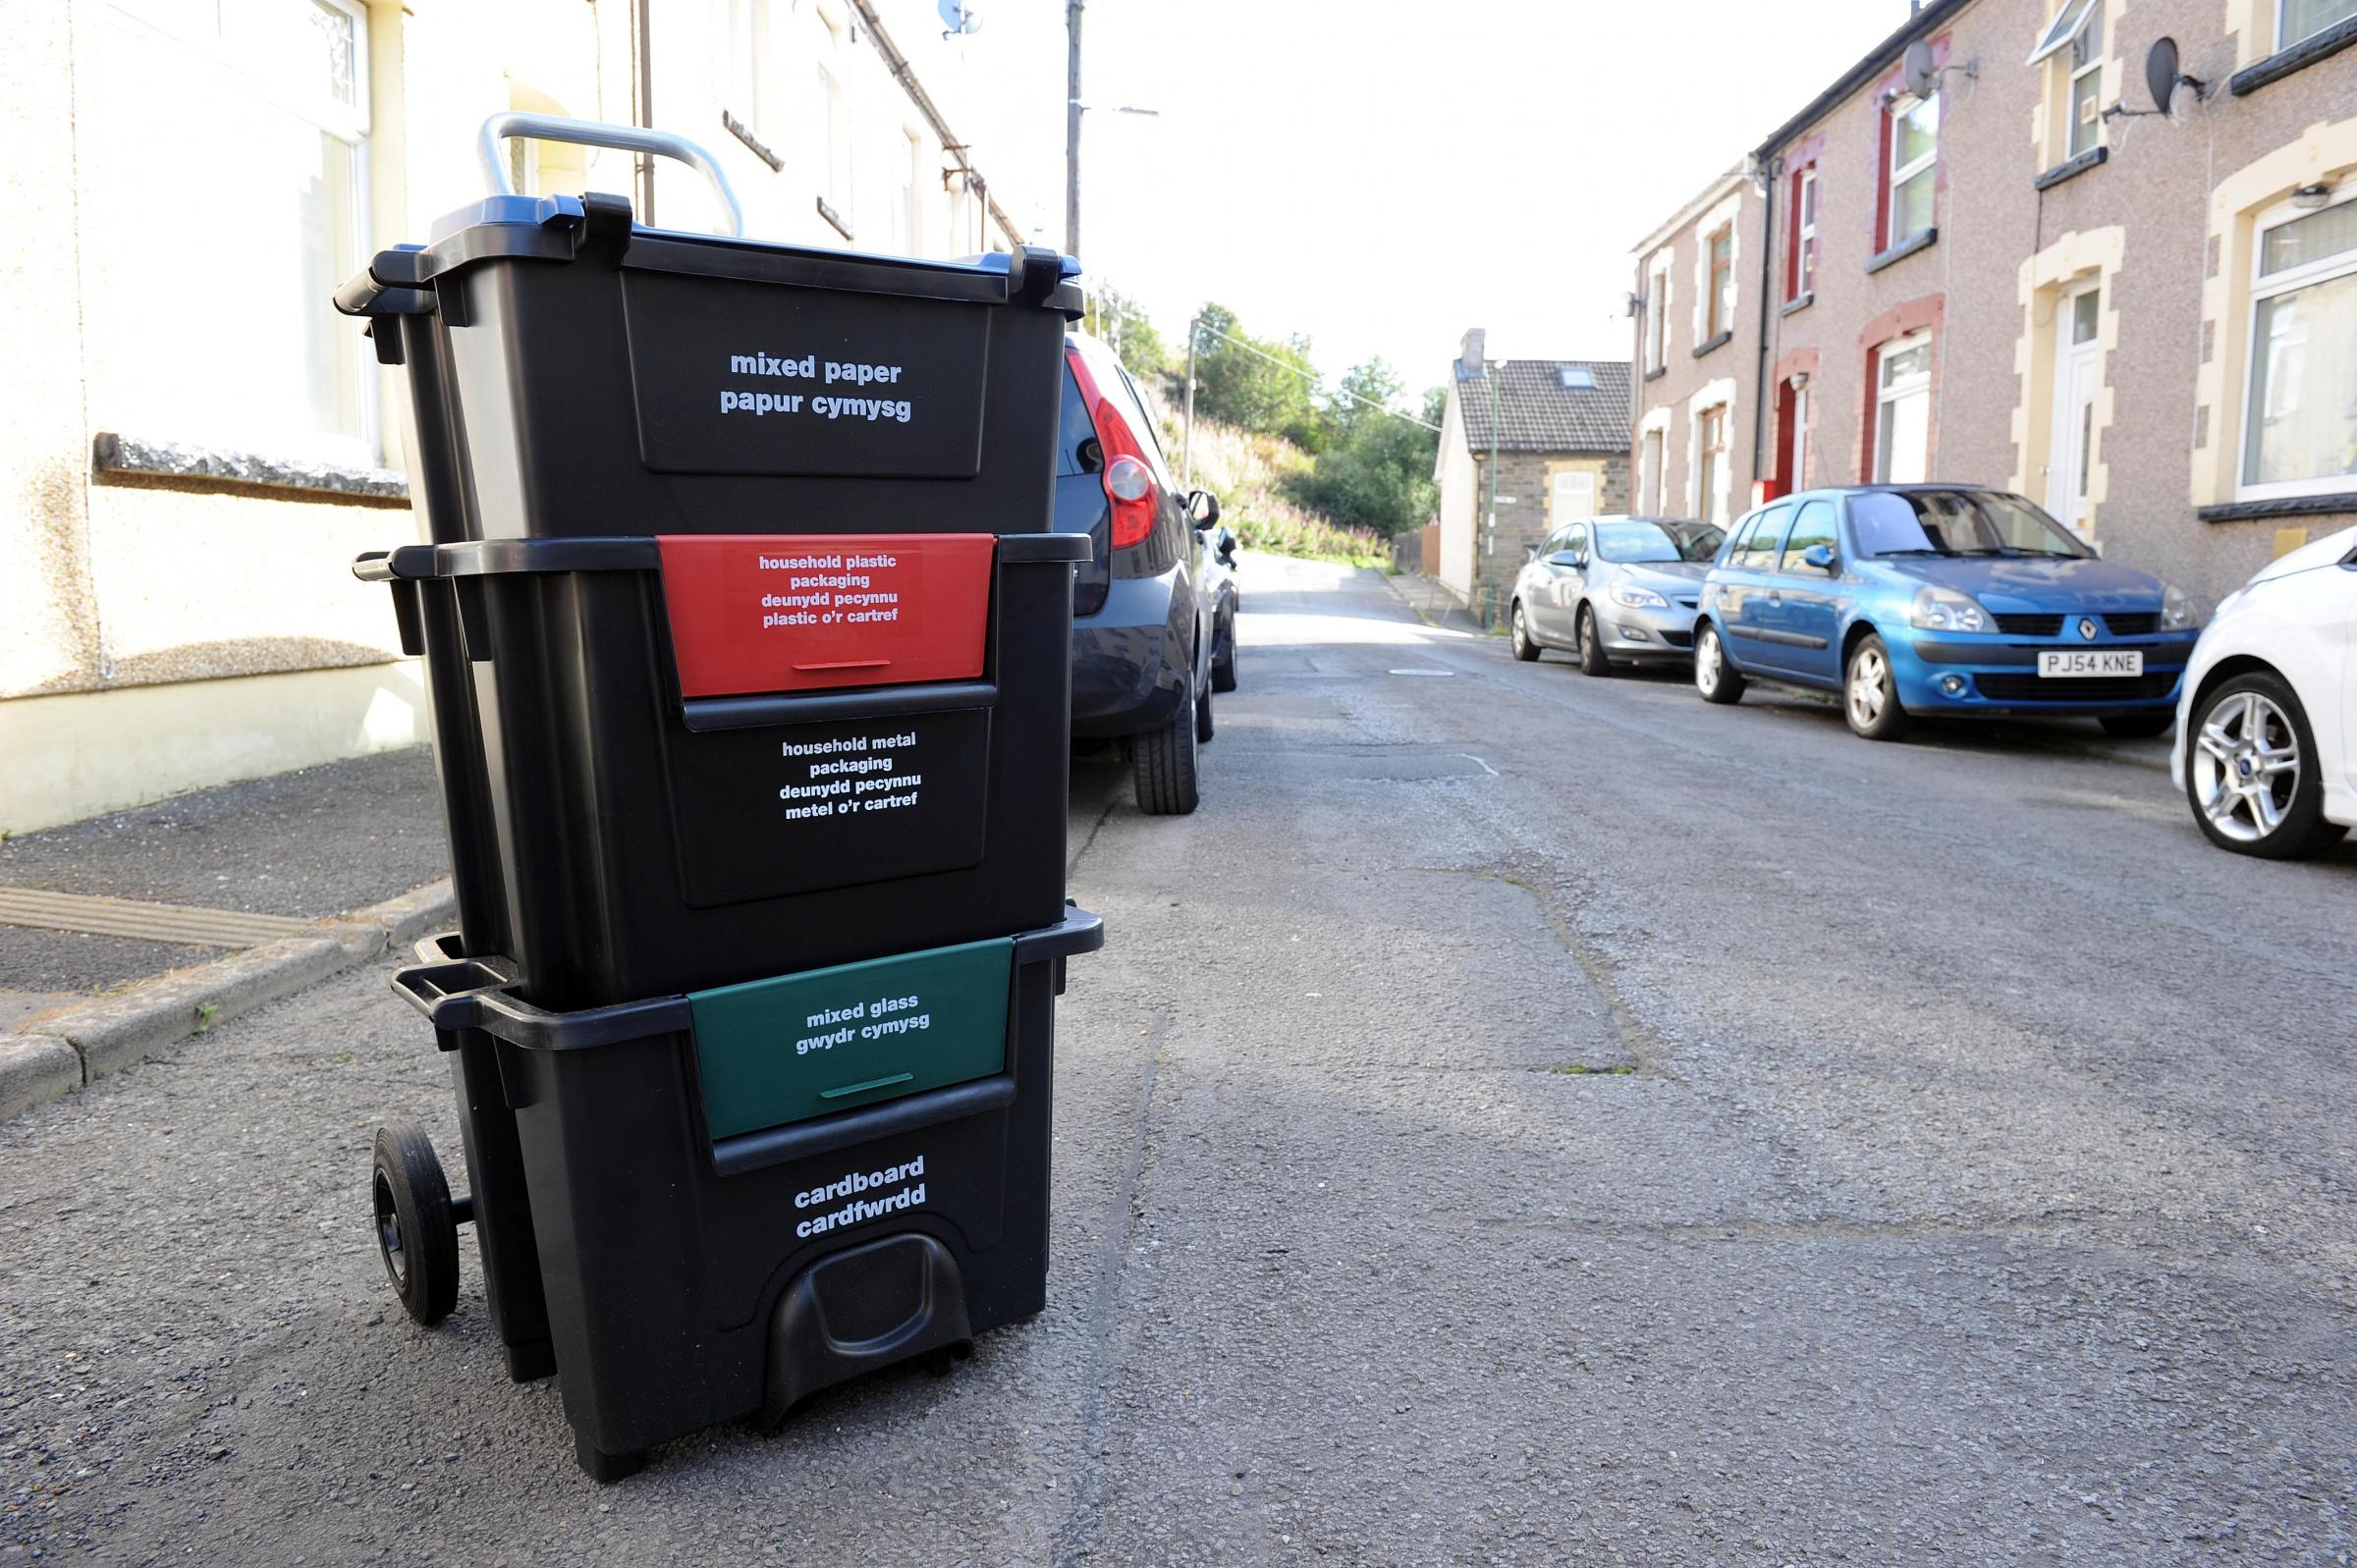 RUBBISH: Residents in Blaenau Gwent could be slapped with £100 fines for not recycling. The plans divided opinion on the Argus website.